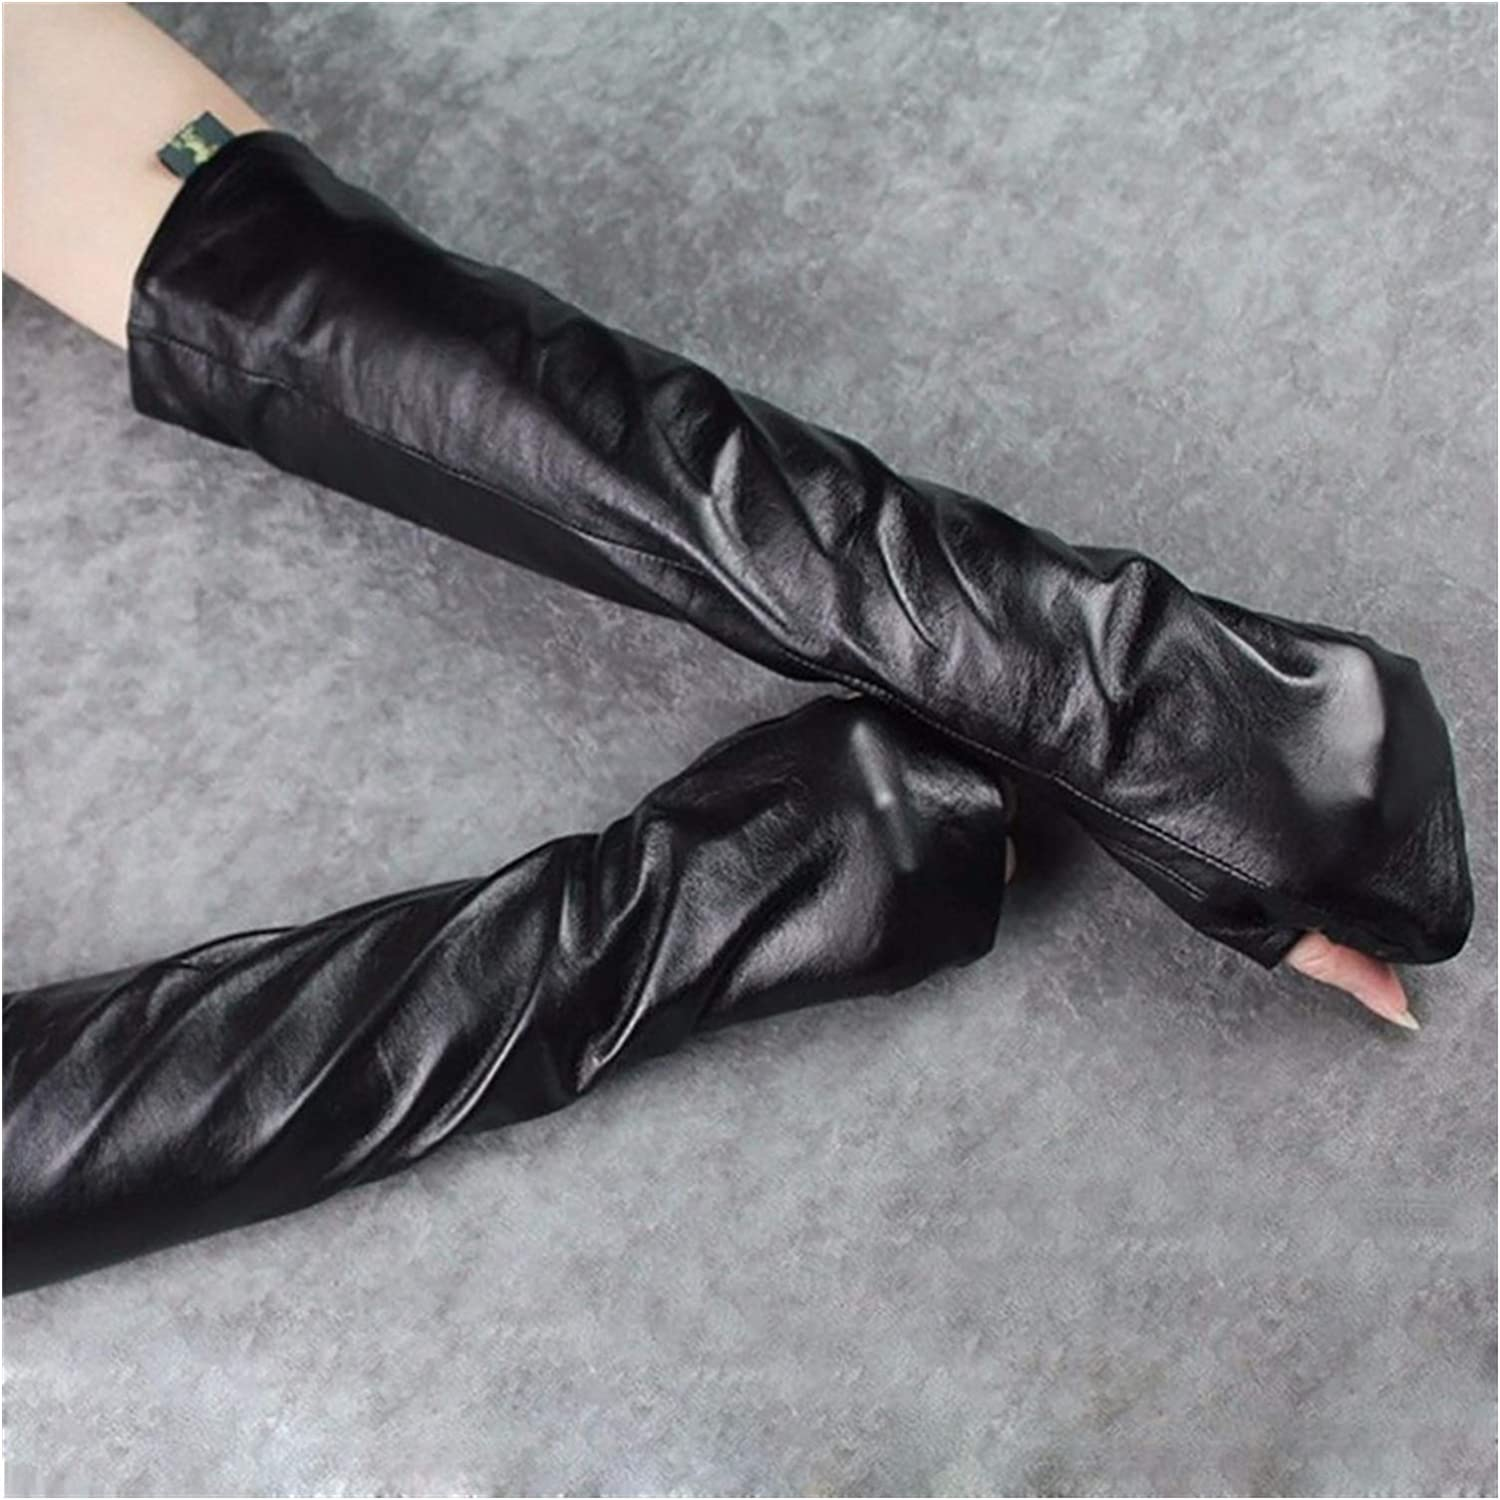 HDBH Fingerless Long Gloves Mittens Long Gloves Ladies Ripped Black Arm Sleeves Spring Women's Gloves Accessories Fashion Women's Knitted Wristbands (Color : 1, Size : 40CM)